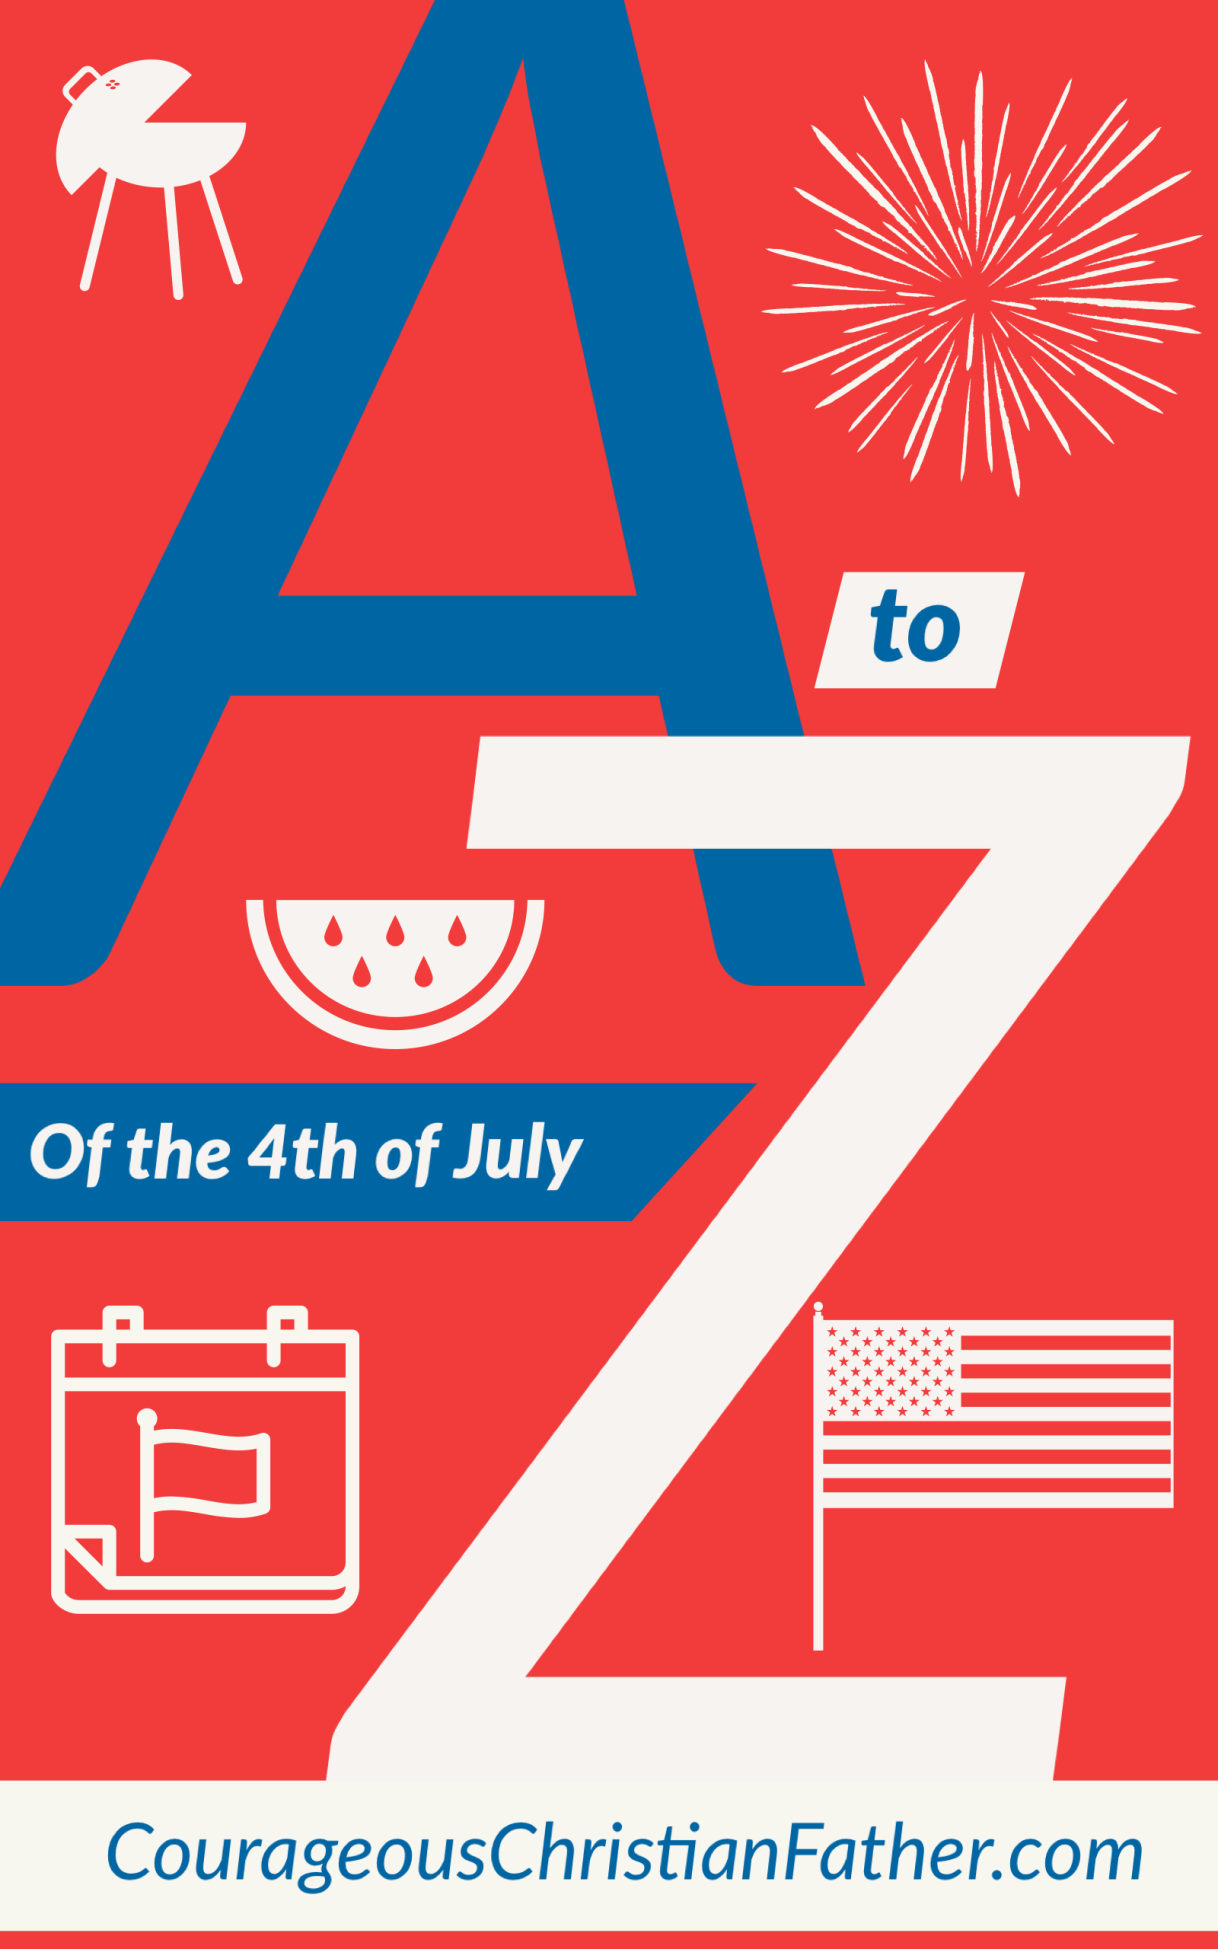 A-Z of 4th of July